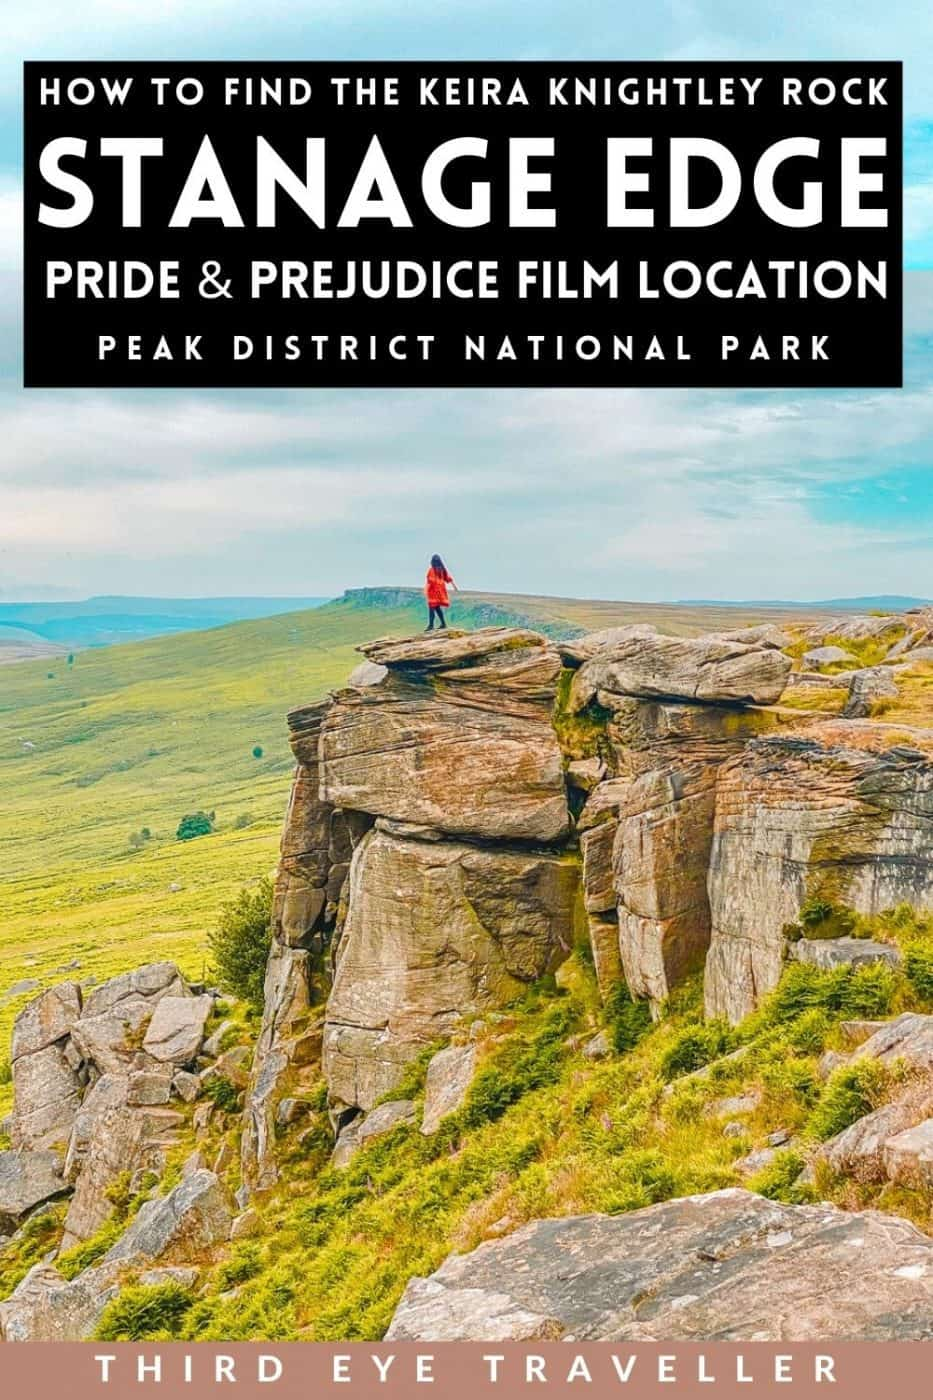 Stanage Edge Pride and Prejudice Filming Location Keira Knightley Rock